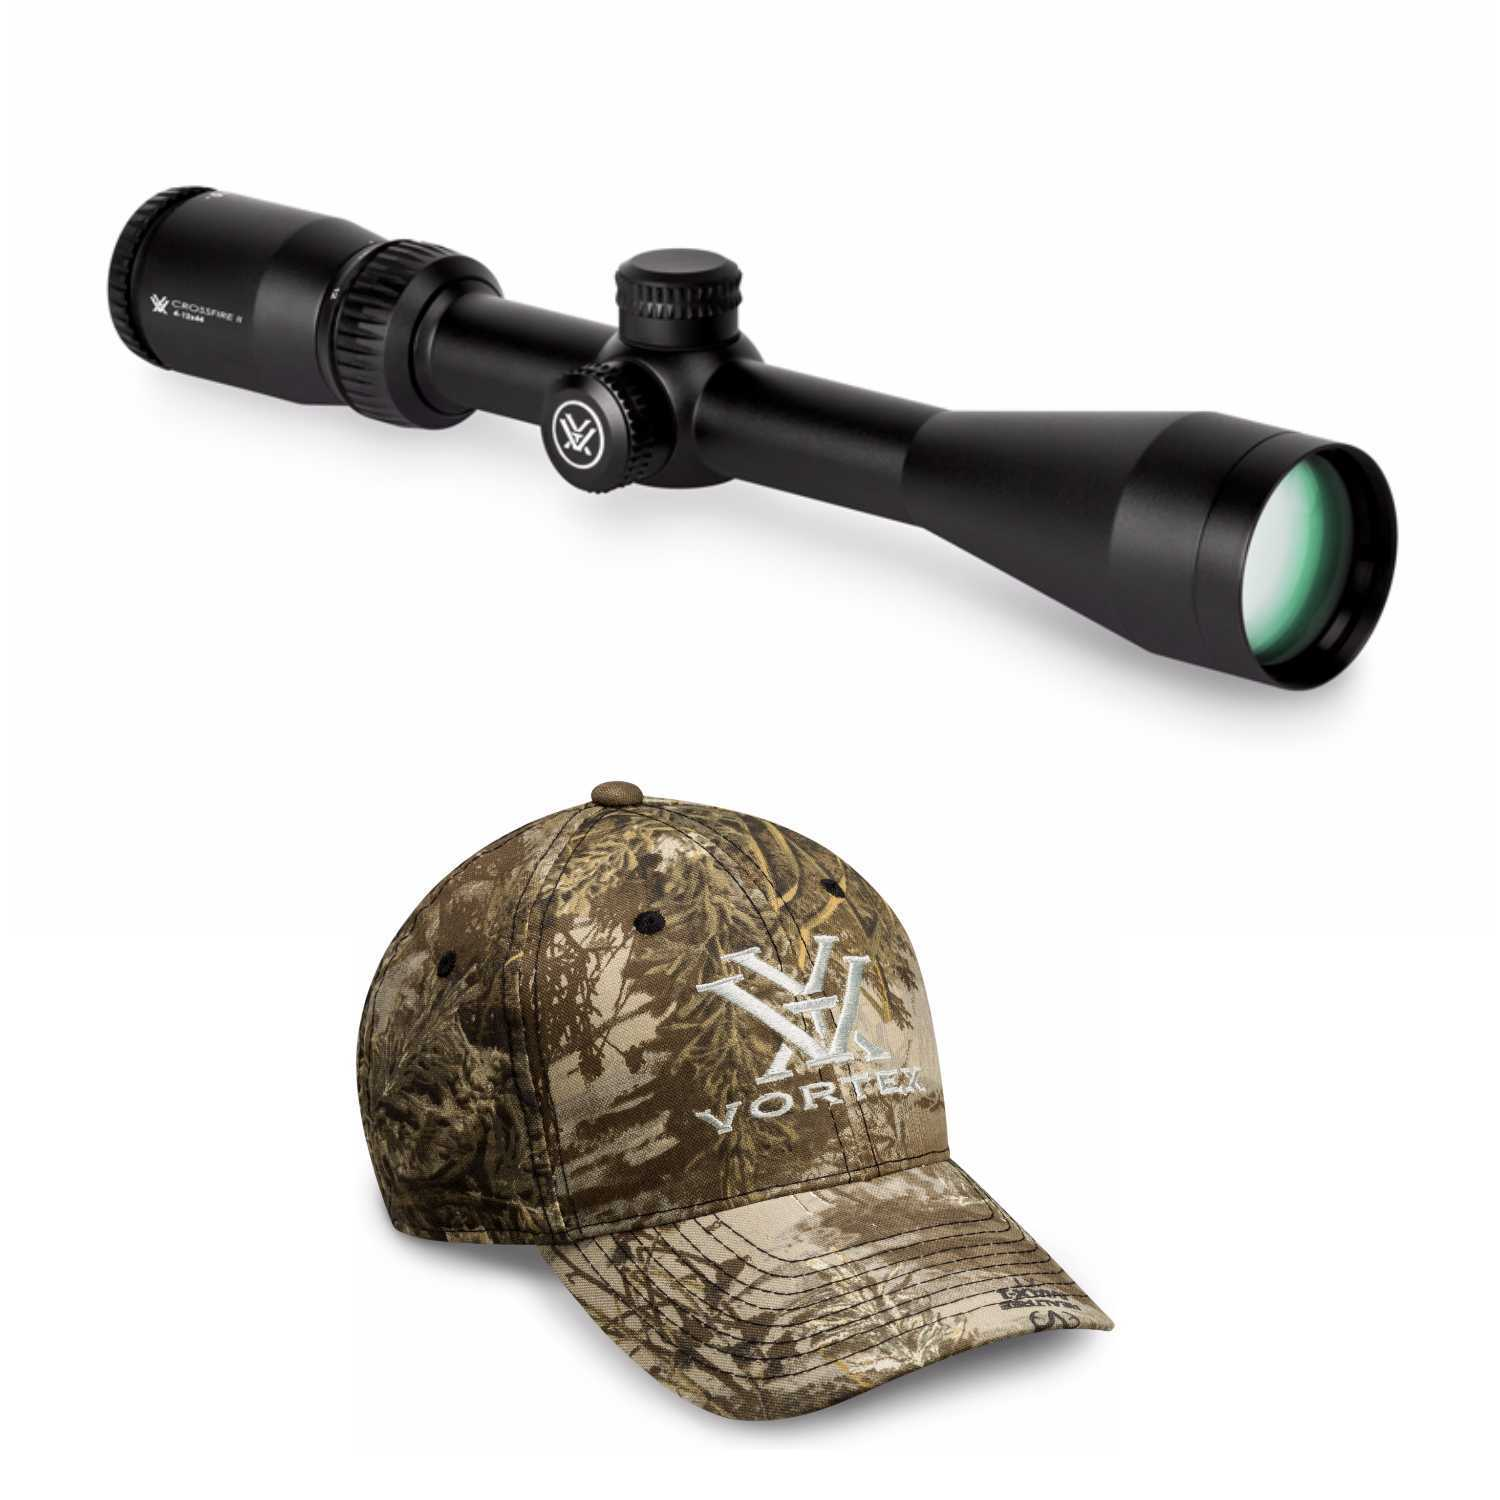 Vortex Optics Crossfire II 4-12x44 BDC Riflescope  with Vortex Camo Cap